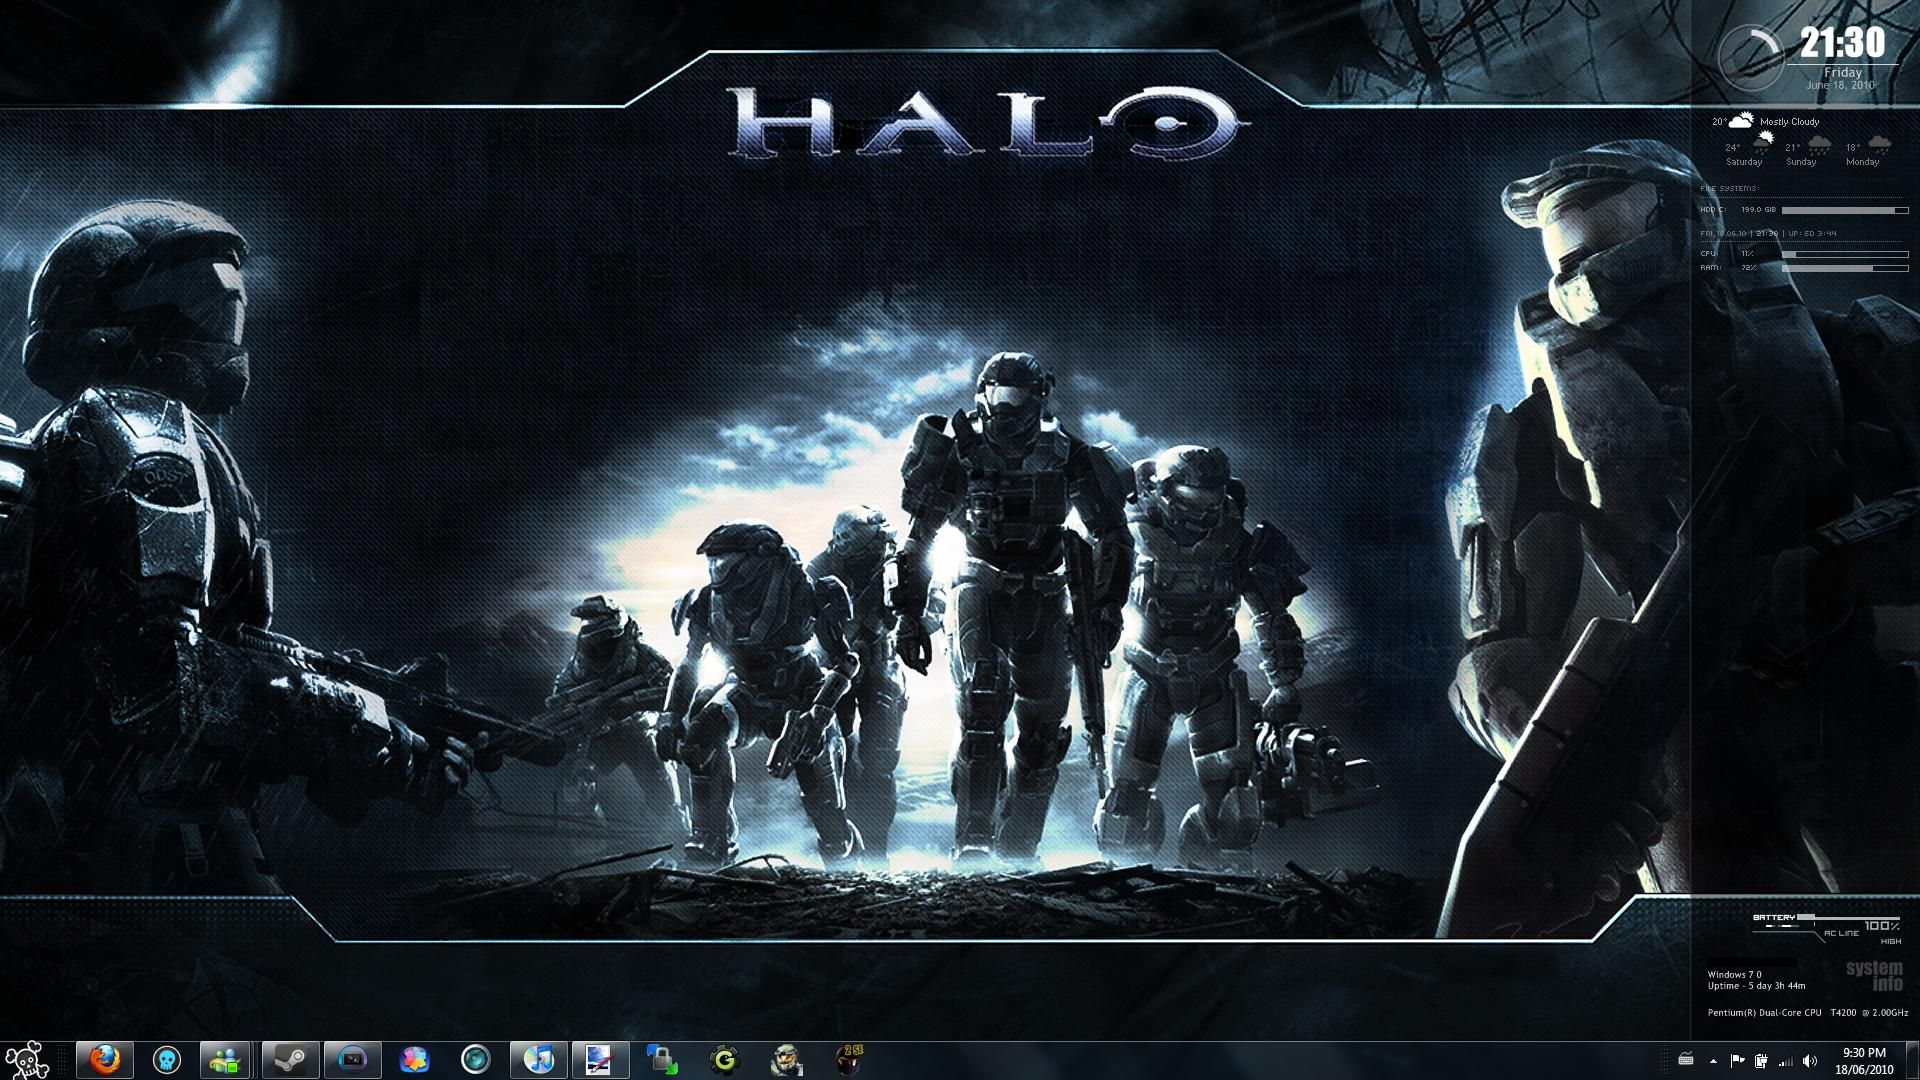 Halo The Master Chief Collection Wallpaper Game Wallpapers Art